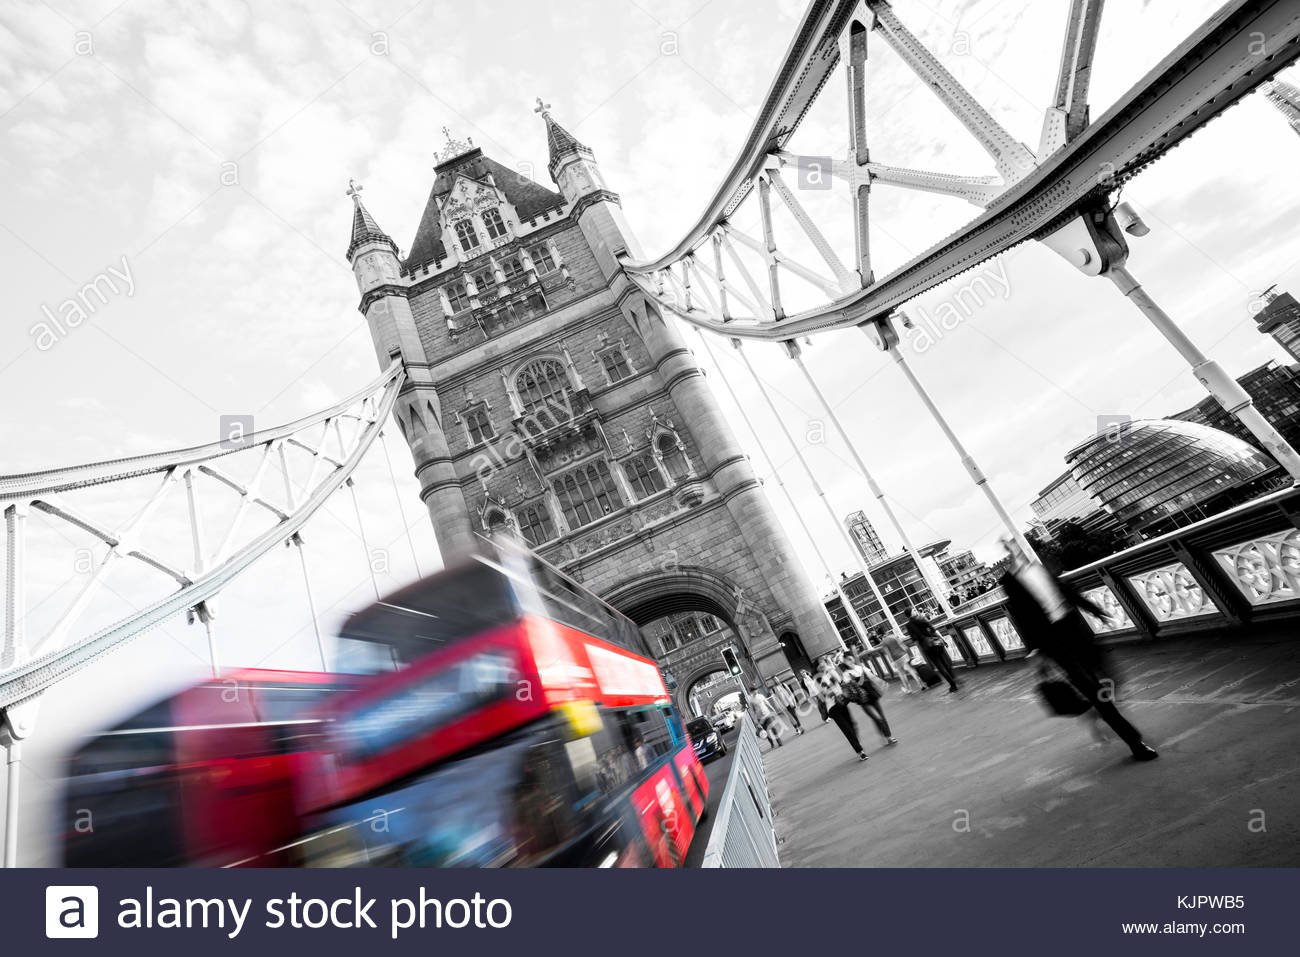 London Tower Bridge in a tilted angled, with two busses crossing. - Stock Image